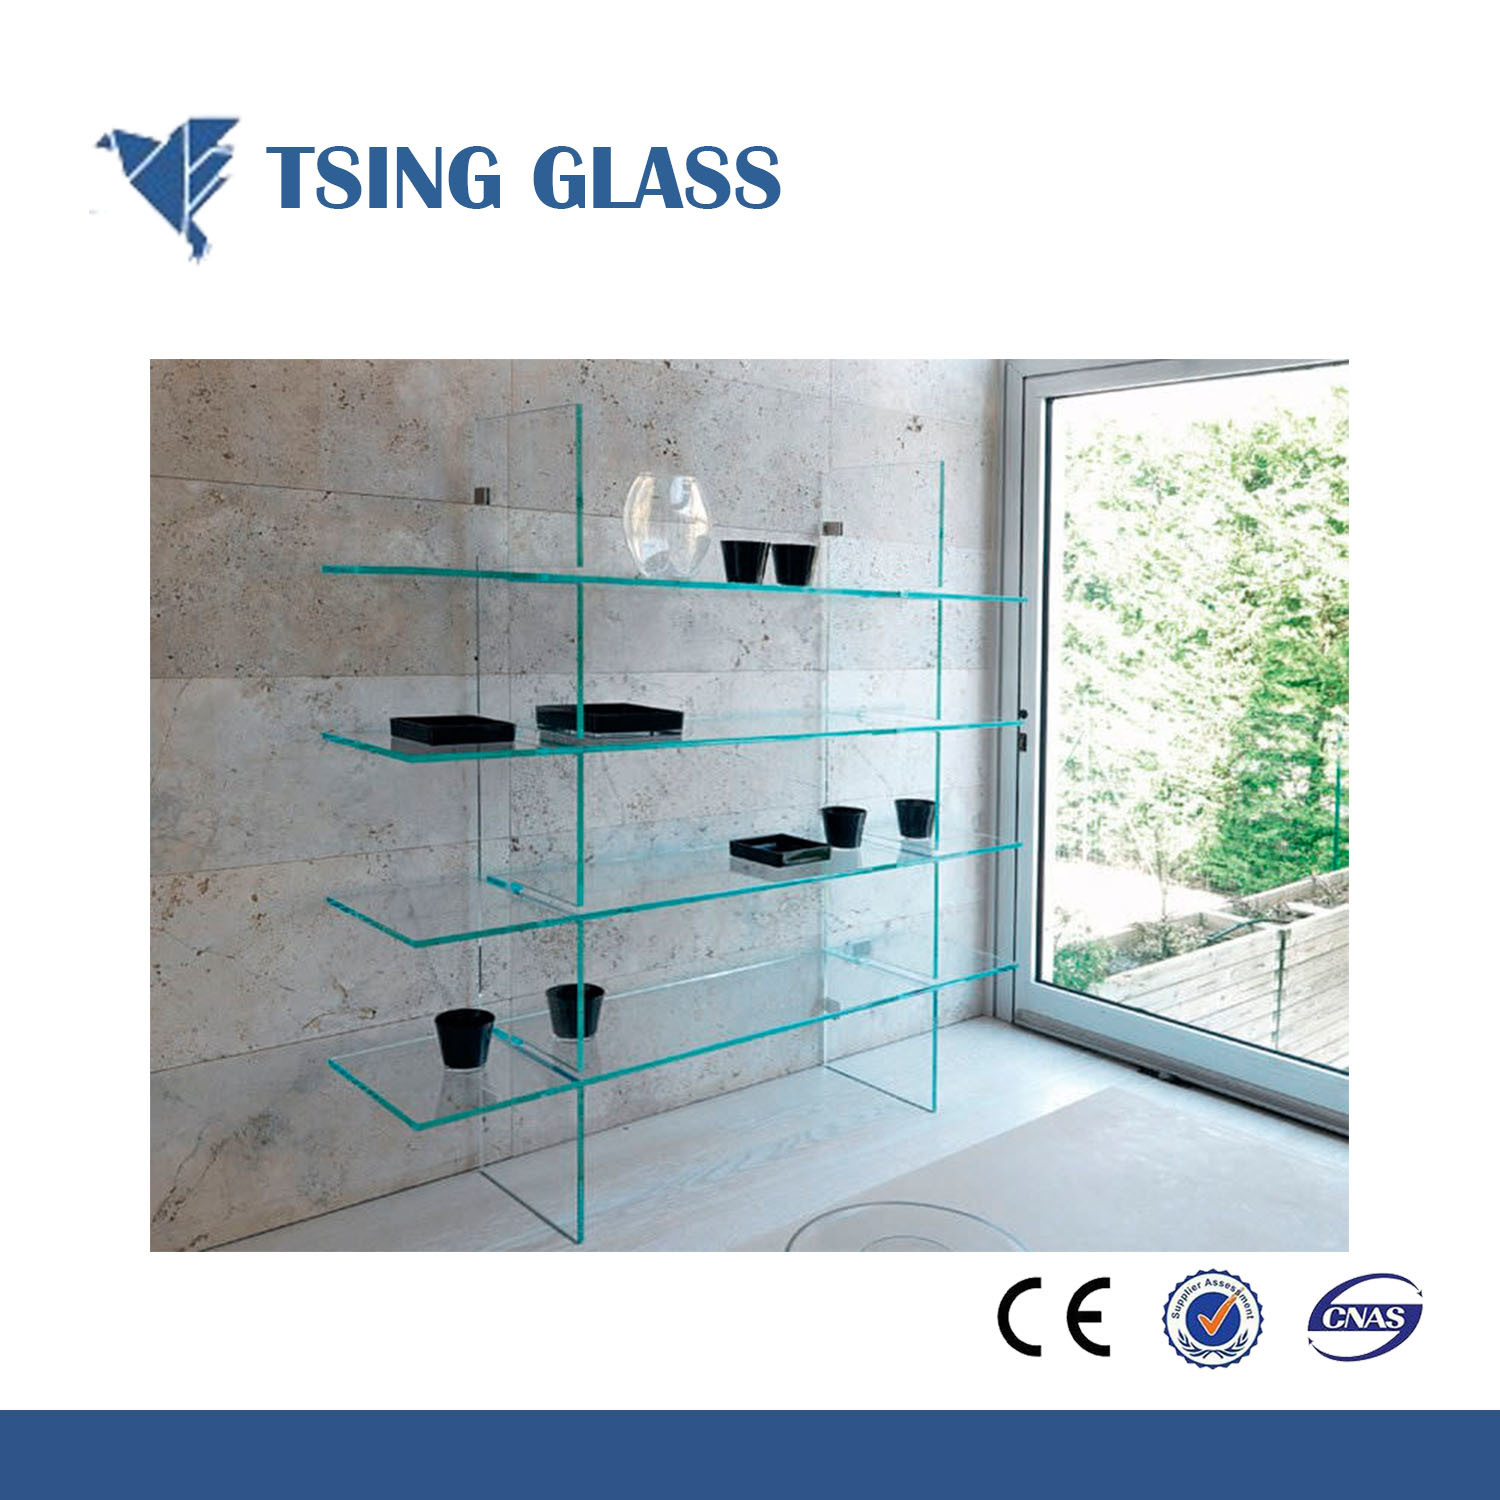 China 3-19mm (frosted) Glass Shelves for Bathroom with Ce & ISO9001 ...